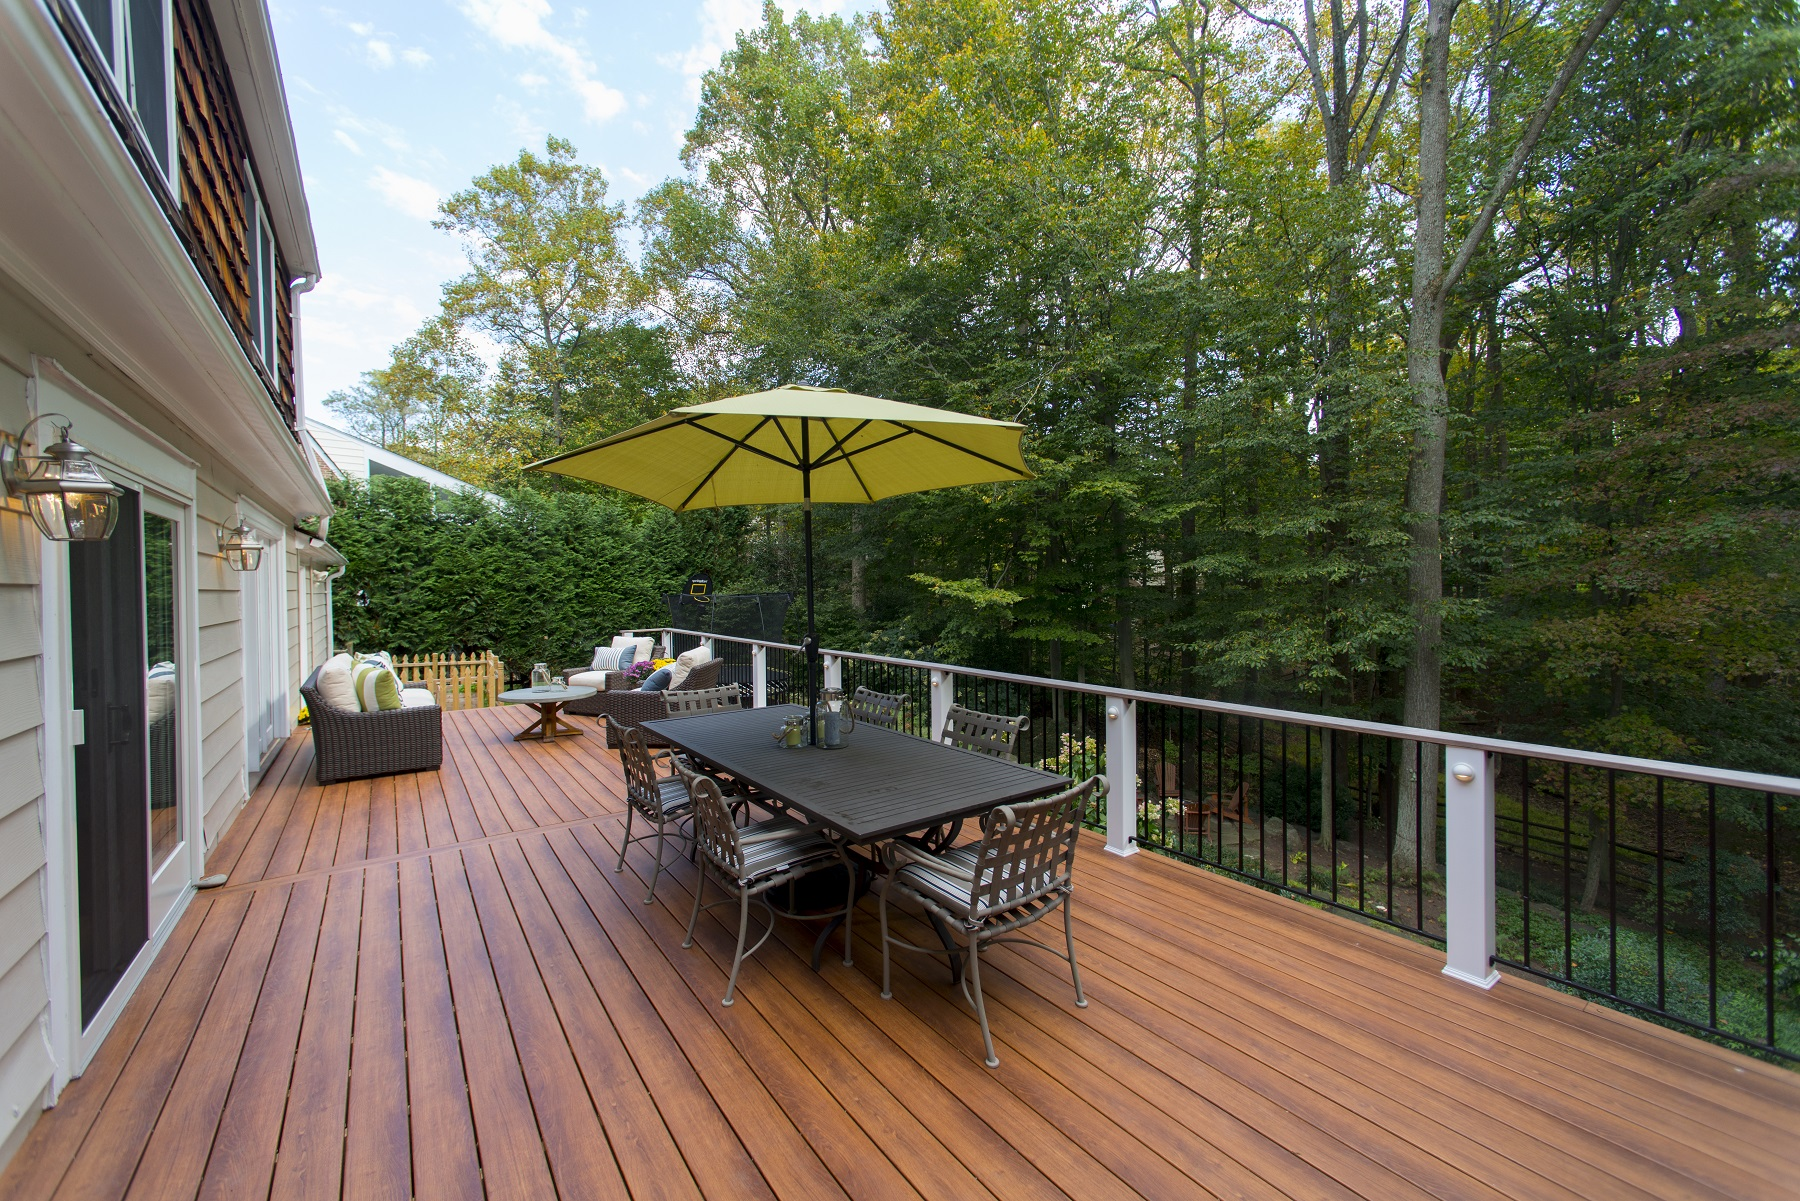 zuri_deck_and_hardwood_screened_porch (15)